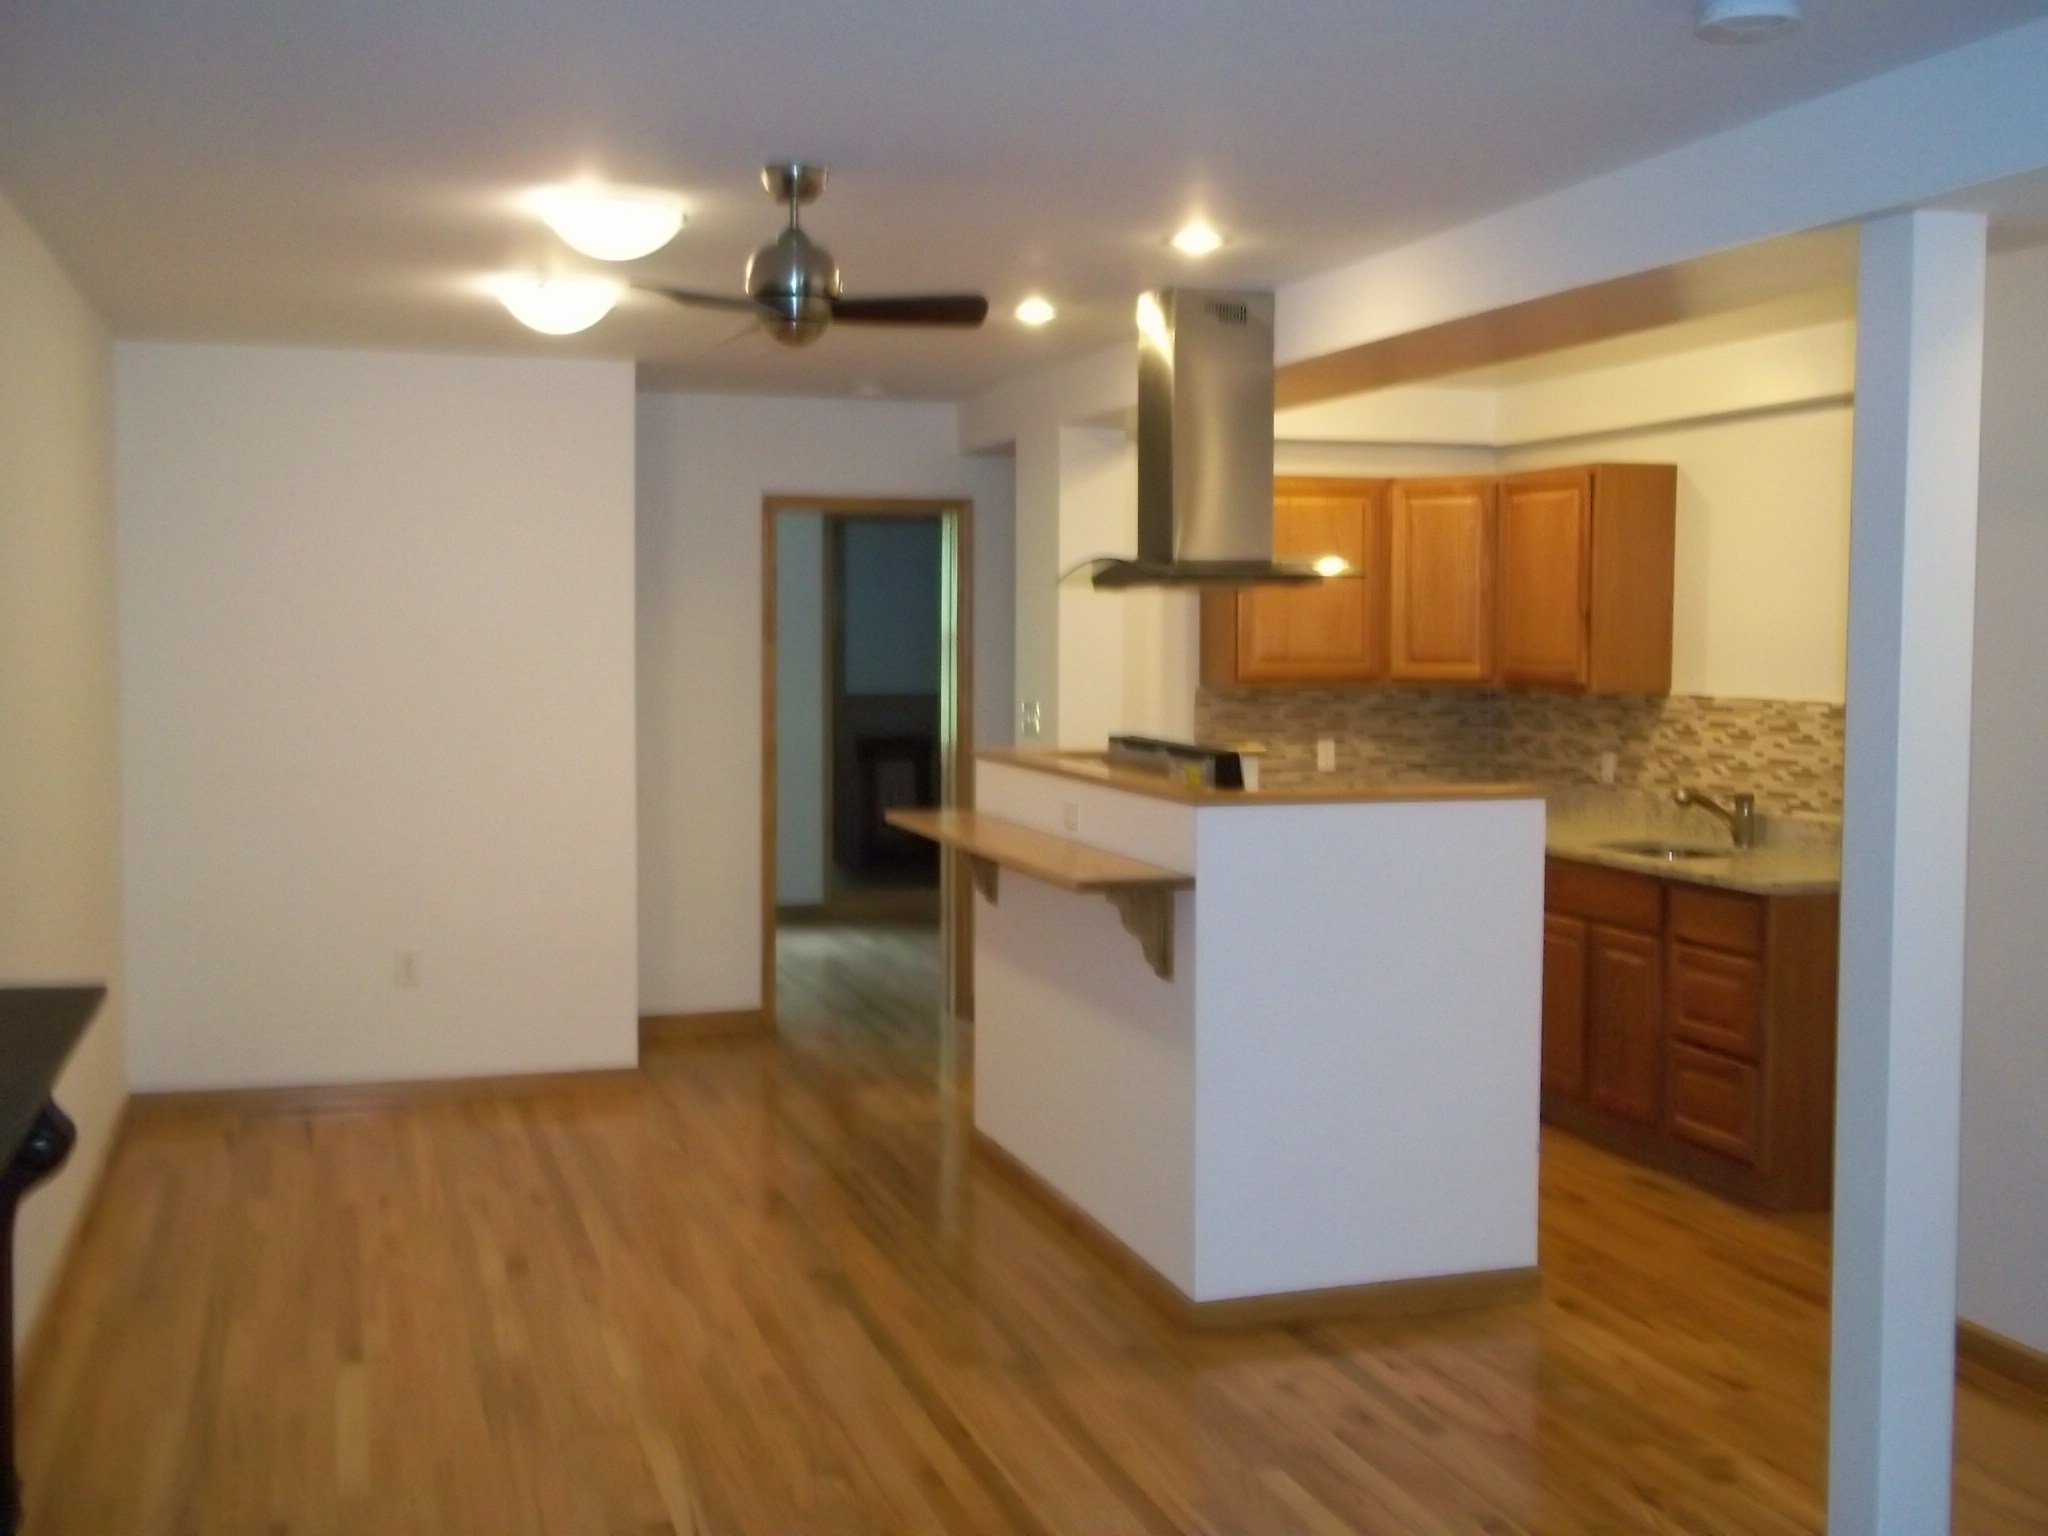 Stuyvesant heights 1 bedroom apartment for rent brooklyn for 1br apartment design ideas